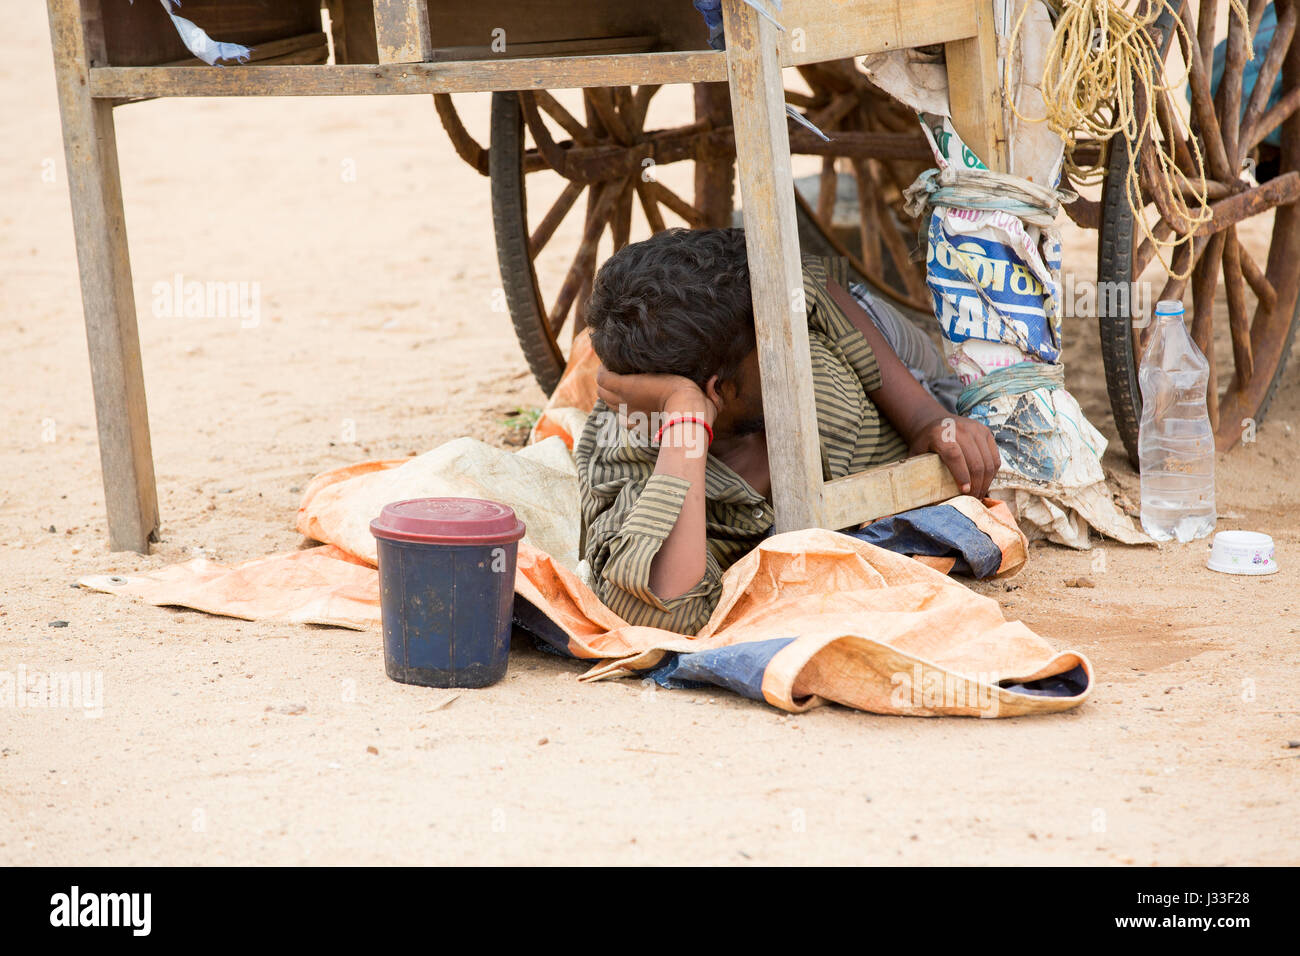 Illustrative image. Pondicherry, Tamil Nadu, India - July 03, 2014. Poor man worker in small village, very hard - Stock Image